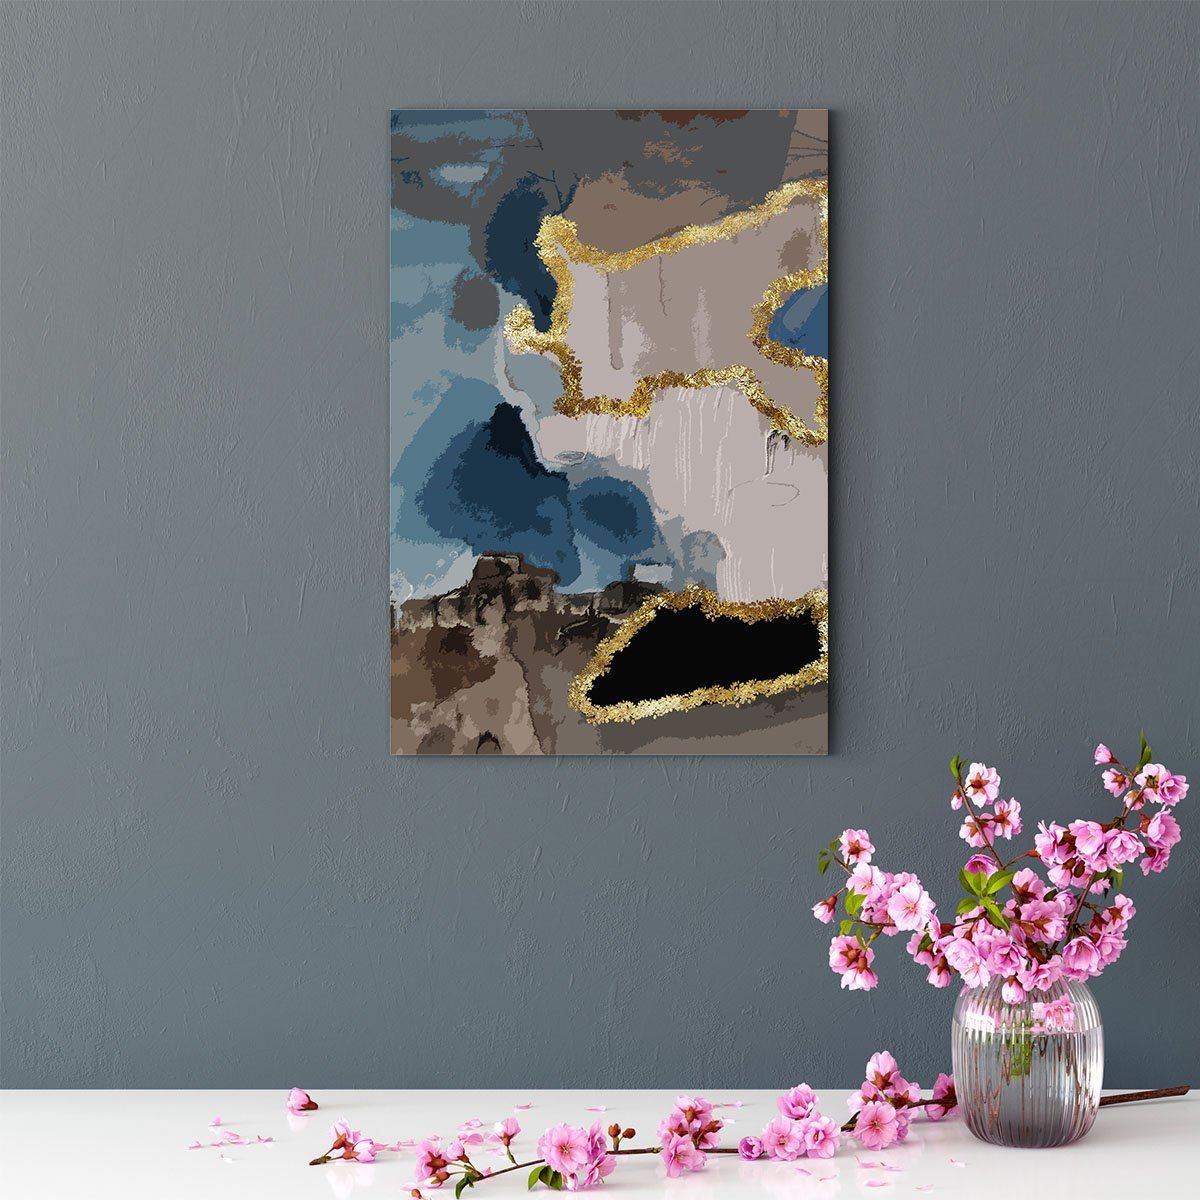 Fascinating color abstract decorative painting 008